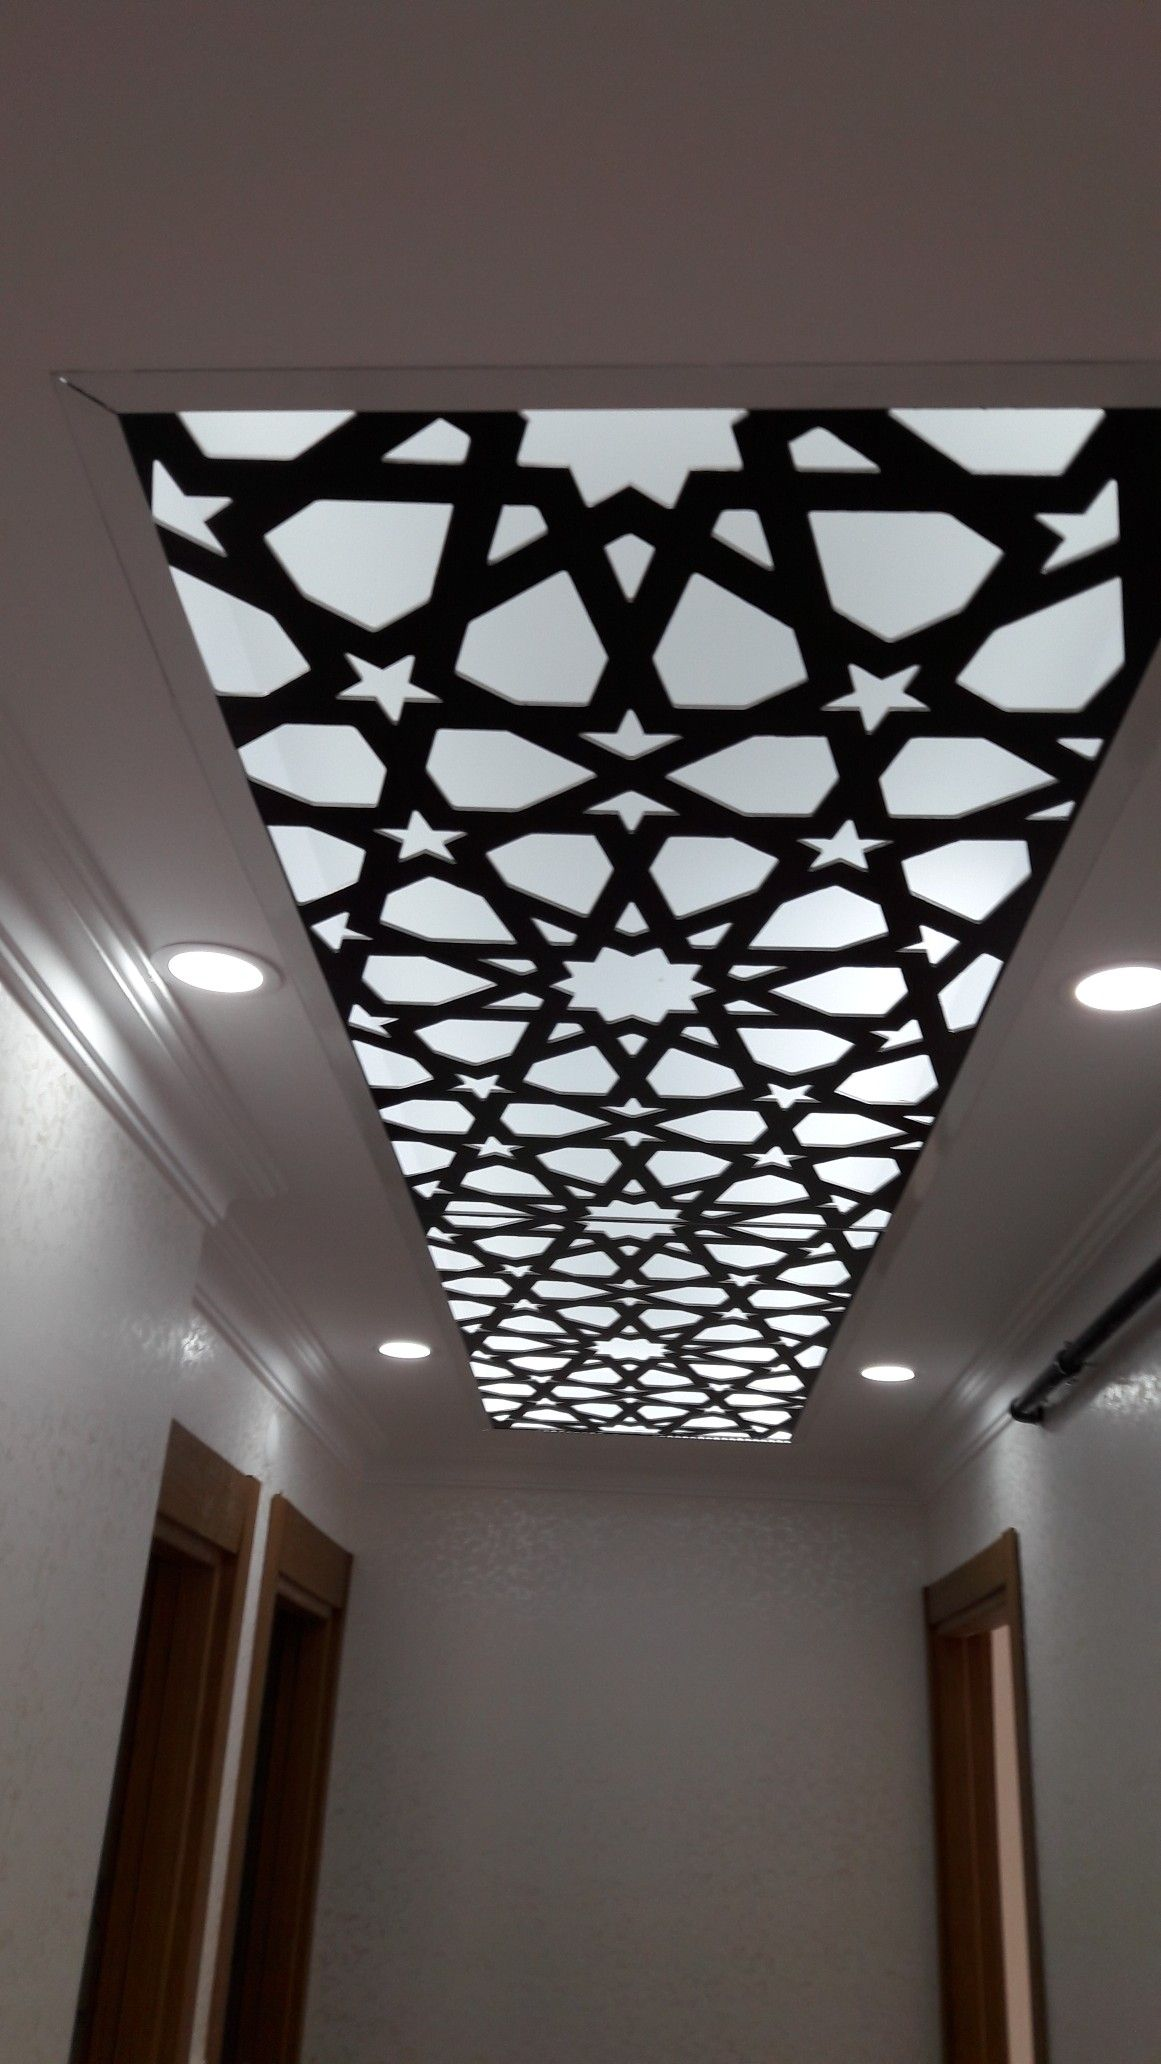 Ceiling Design Is An Important Point In The Design Of